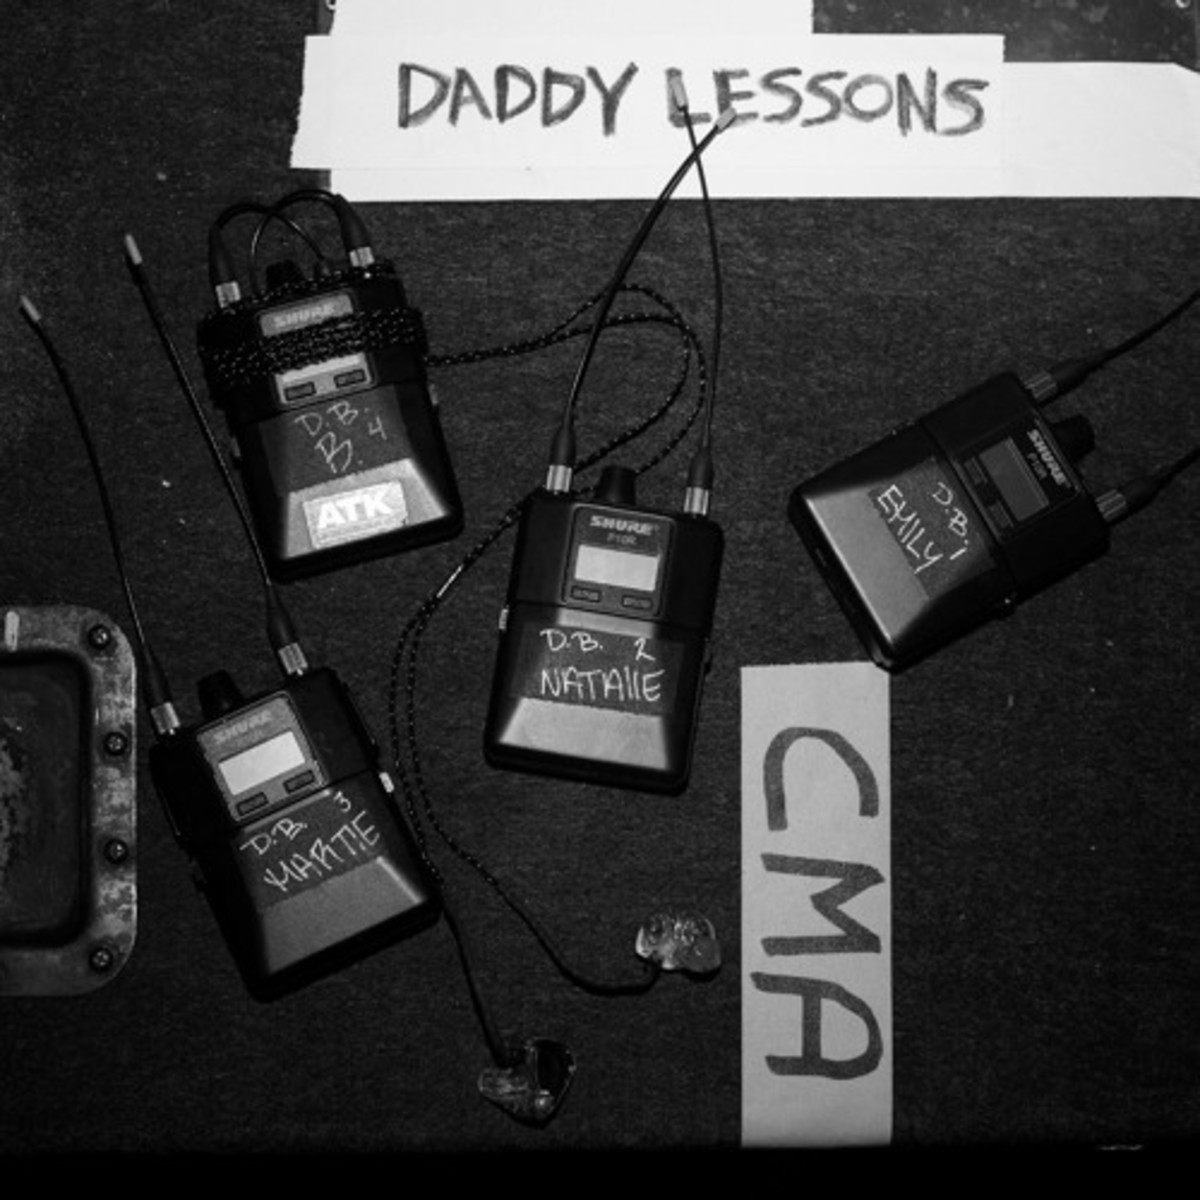 beyonce-daddy-lessons.jpg